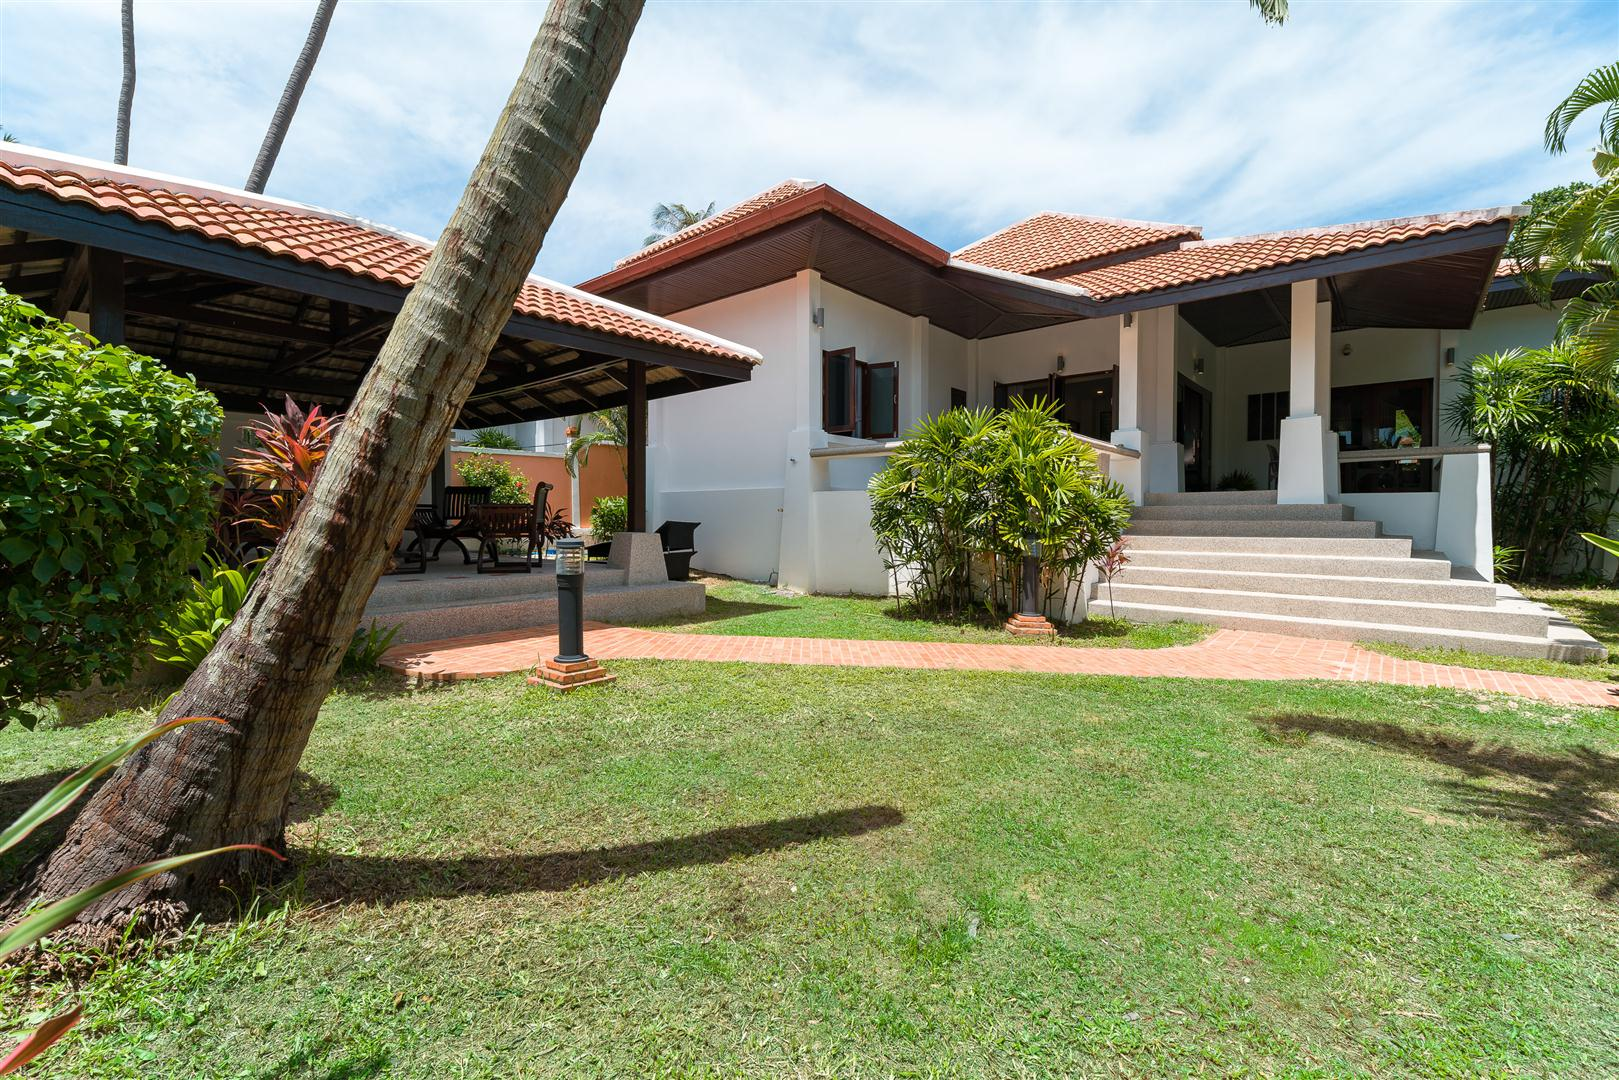 3 bedroom villa, Samui, Pool